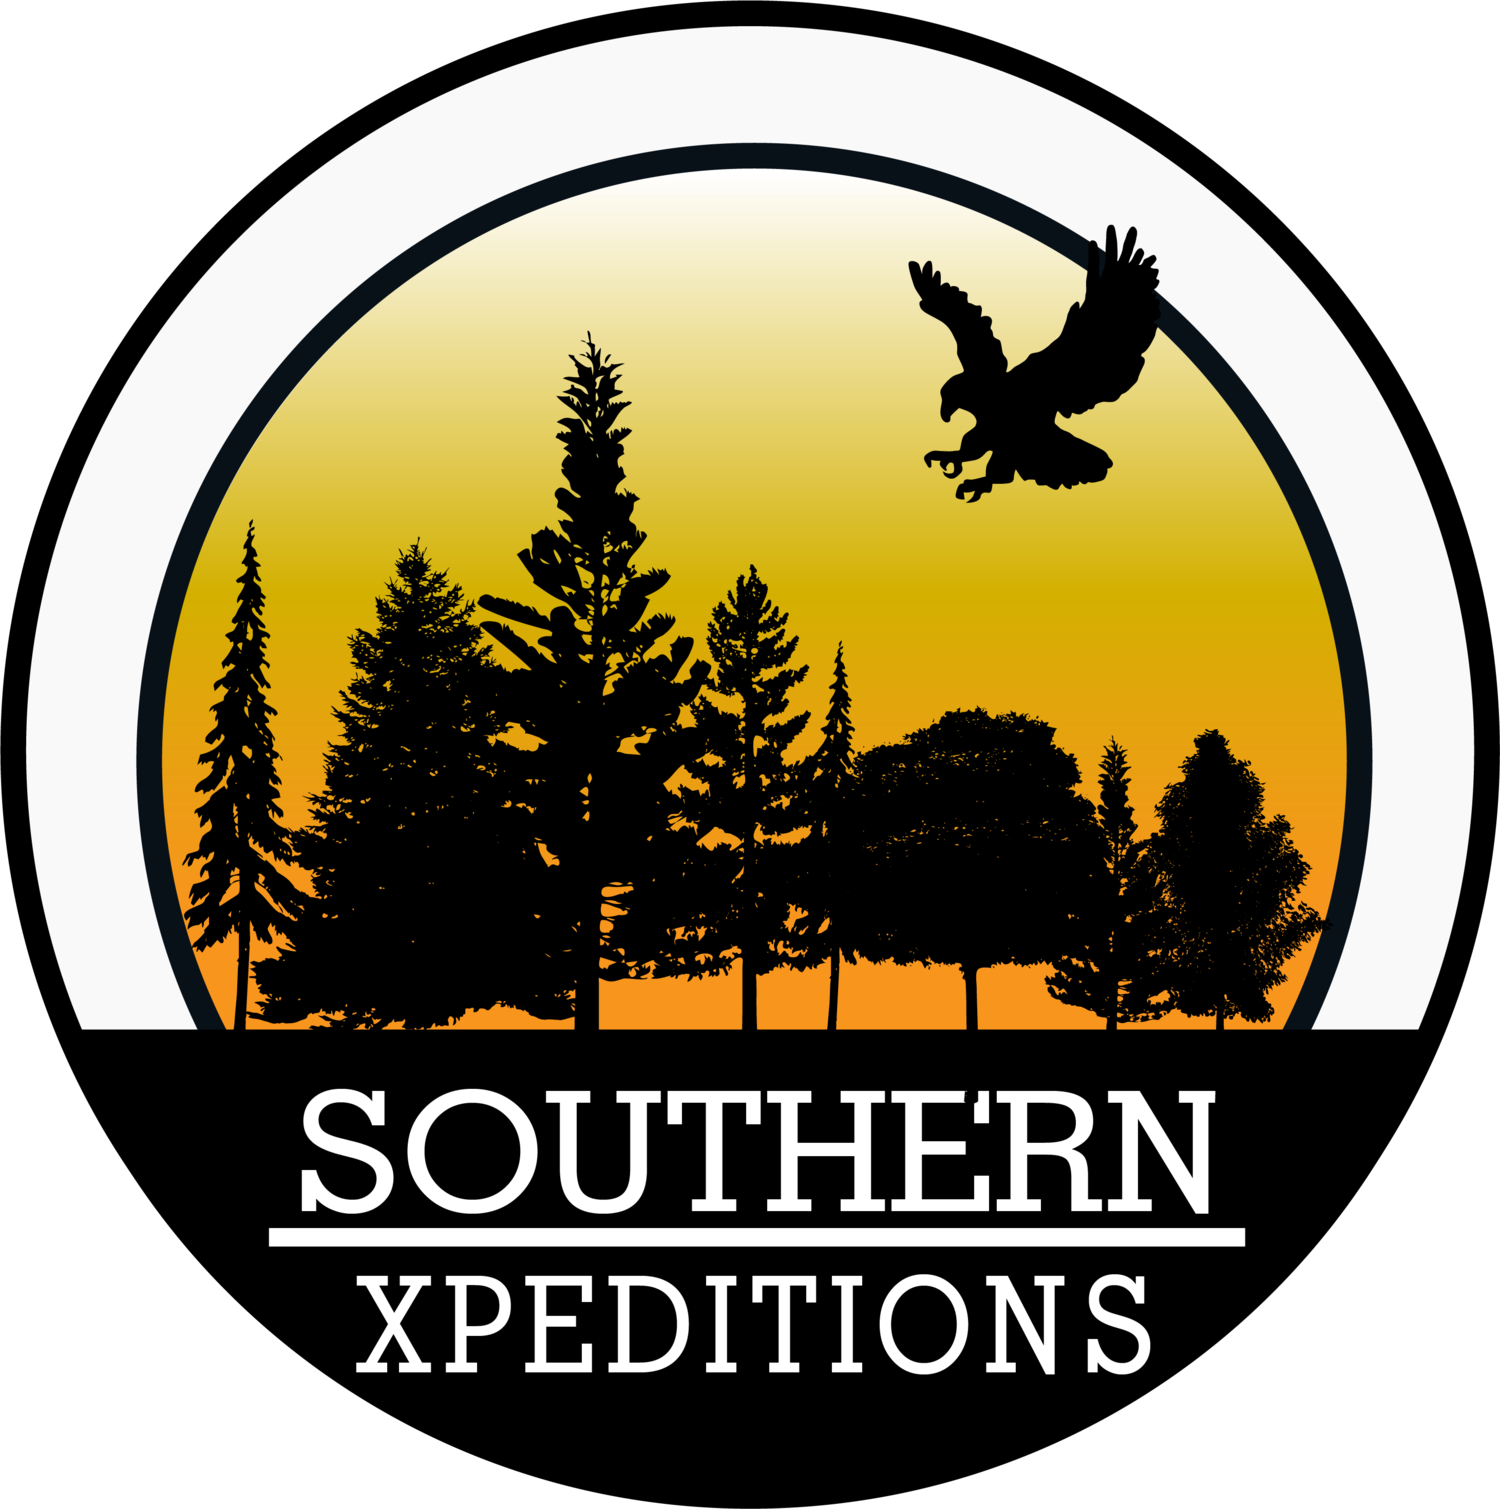 Southern Xpeditions